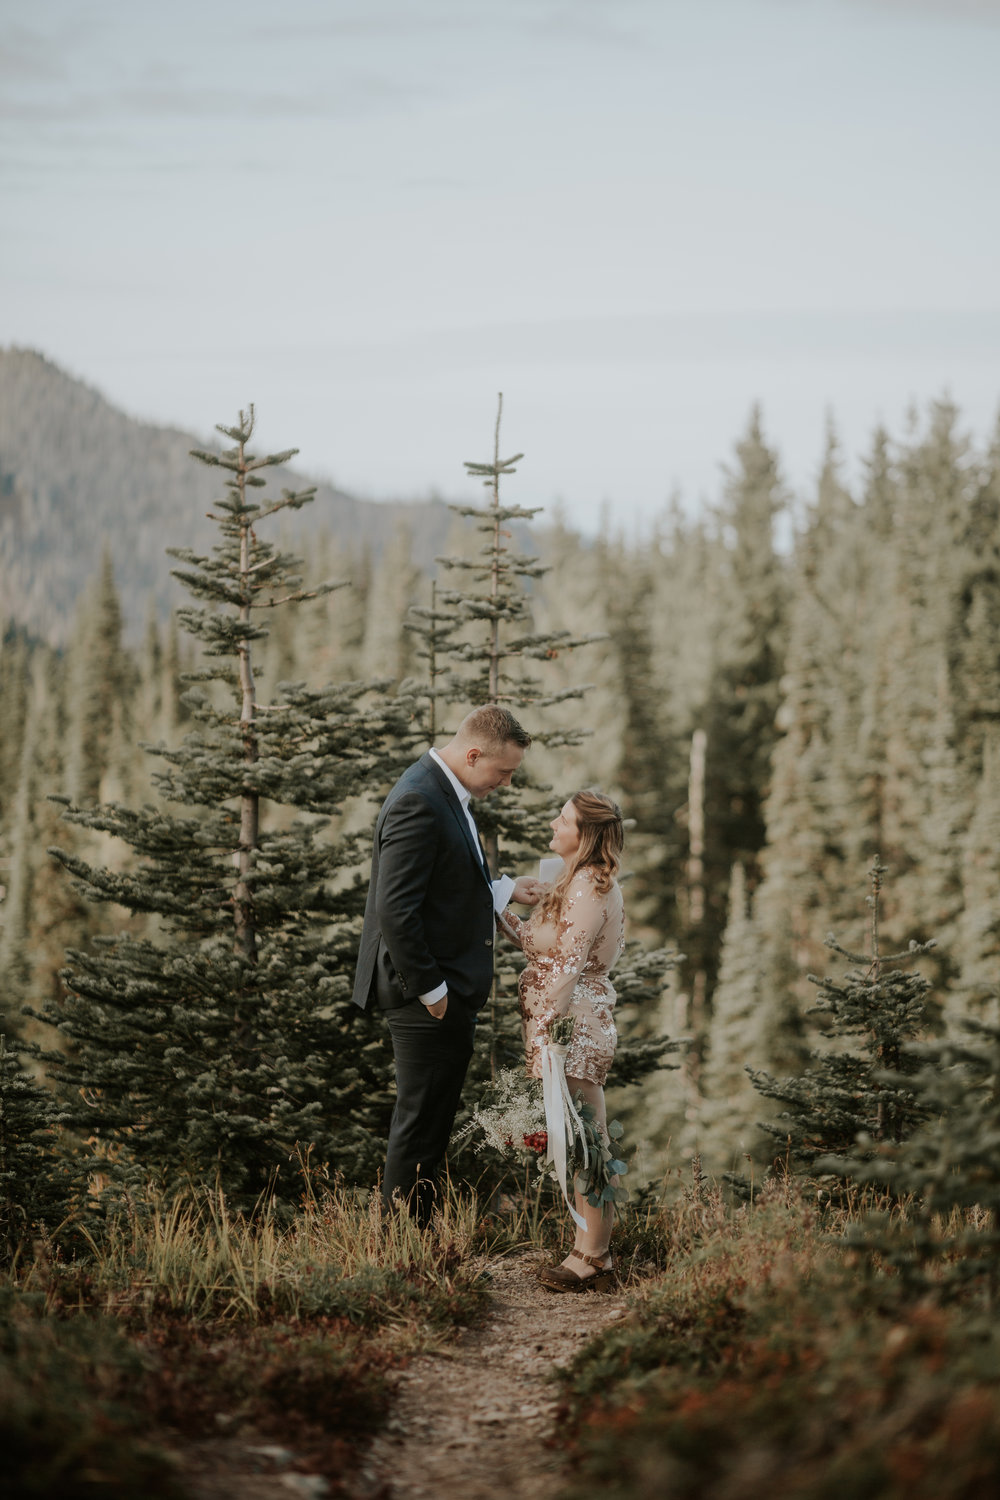 PNW-Hurricane-Ridge-Port-Angeles-Washington-elopement-photographer-kayla-dawn-photography-kayladawnphoto-wedding-anniversary-photoshoot-olympic-peninsula-133.jpg